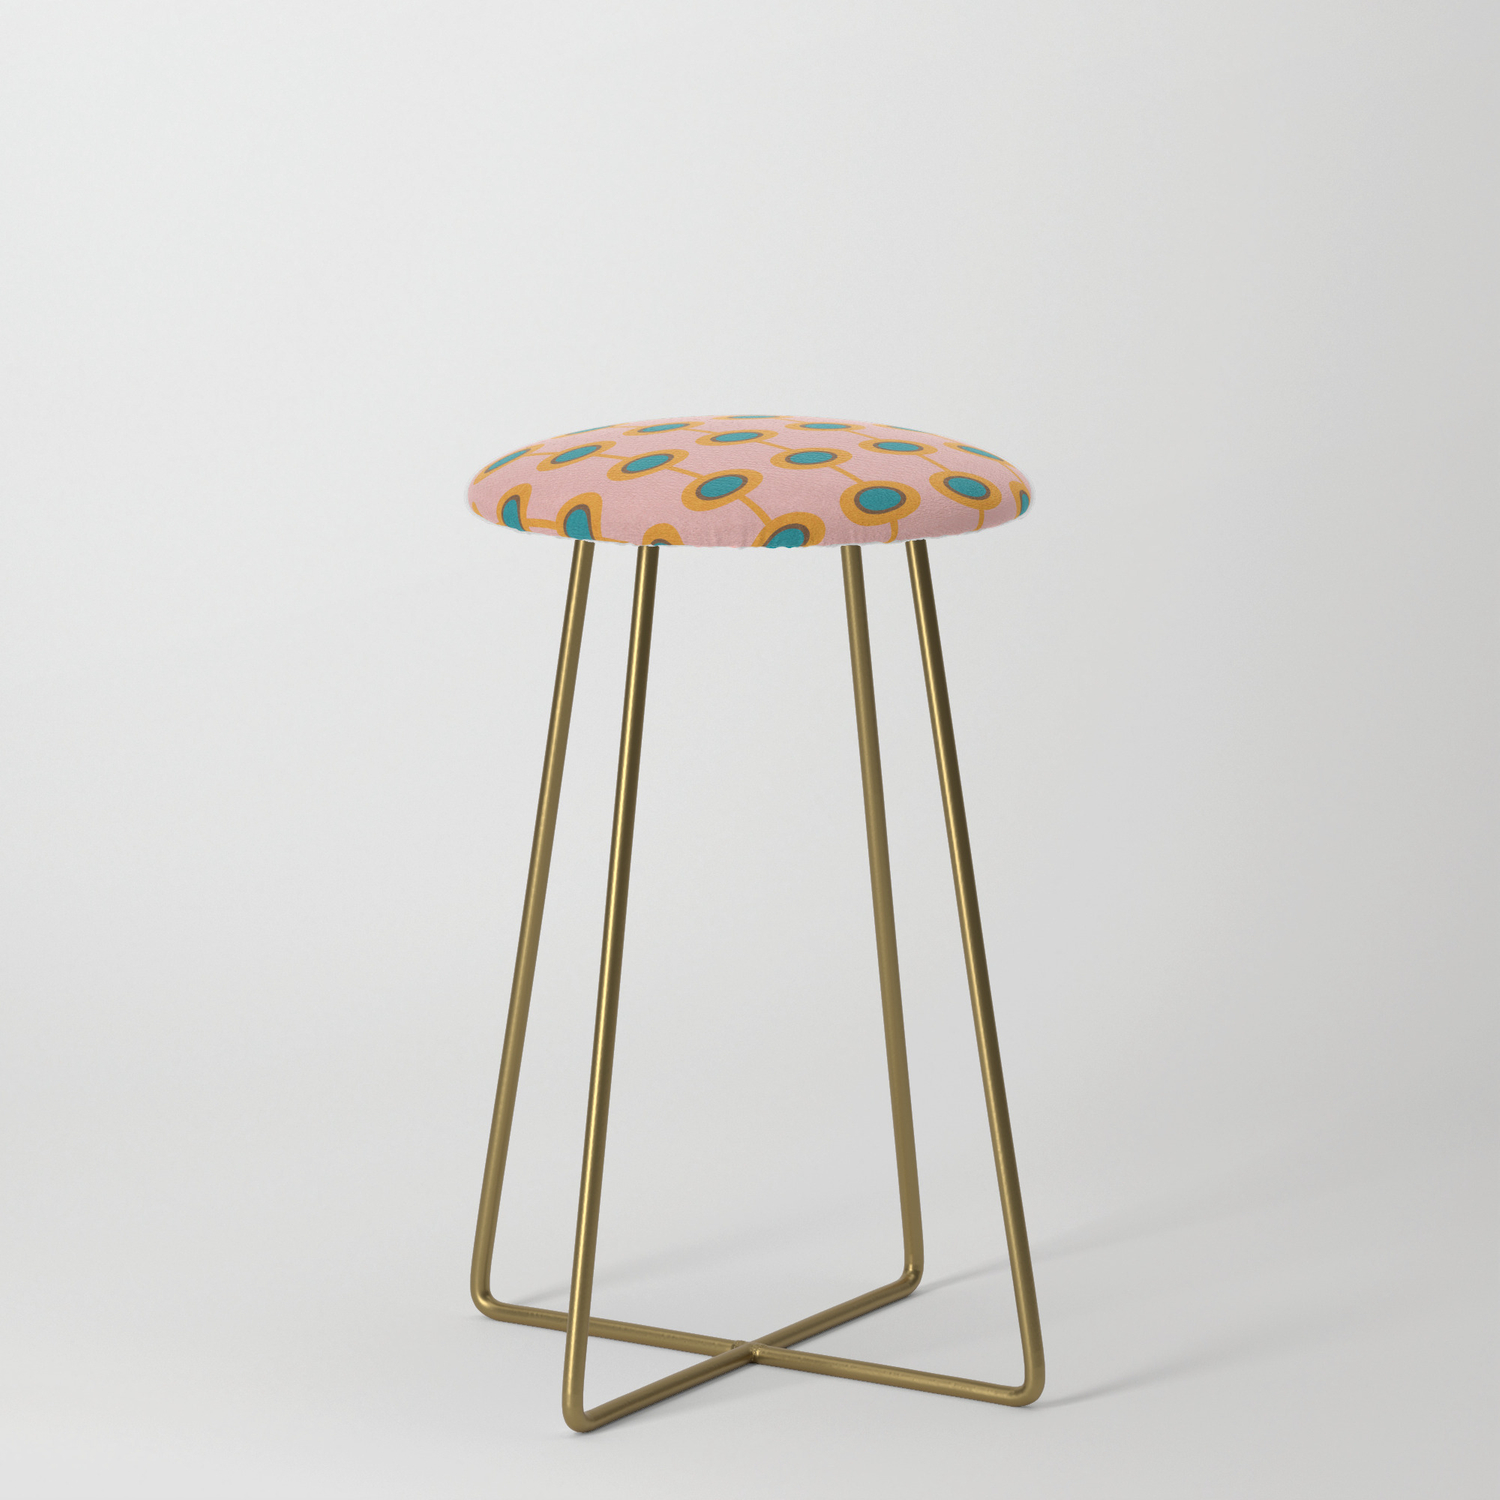 Image of: Flower Pod Pink Mid Century Modern Counter Stool By Susycosta Society6